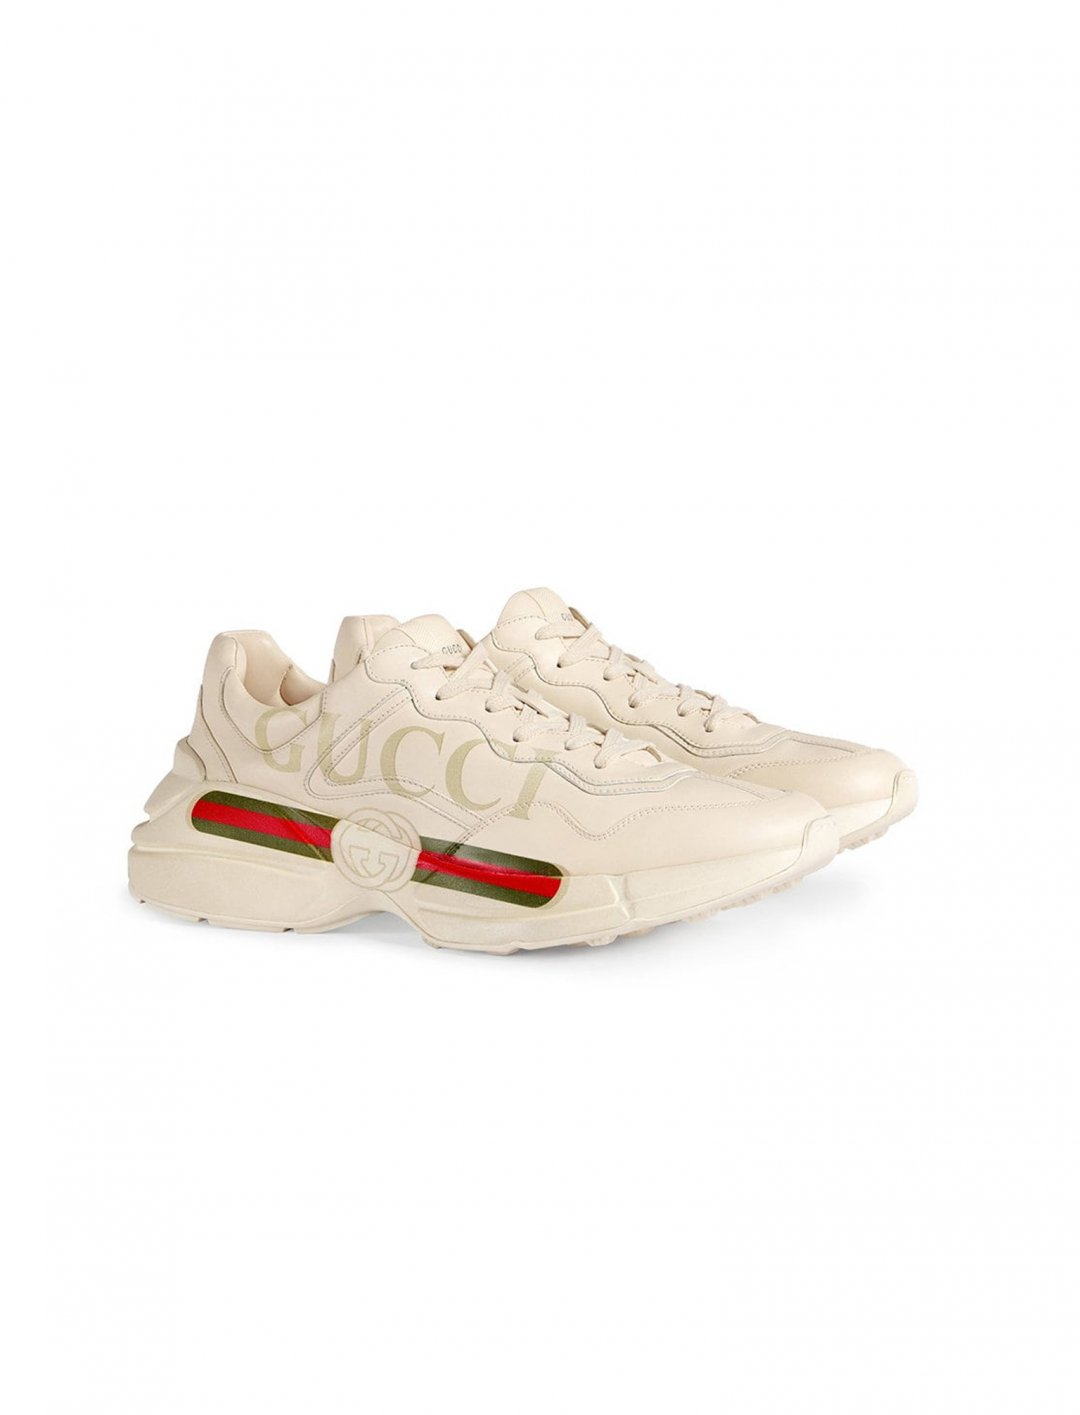 "Lotto Boyzz' Chunky Sneakers {""id"":12,""product_section_id"":1,""name"":""Shoes"",""order"":12} Gucci"